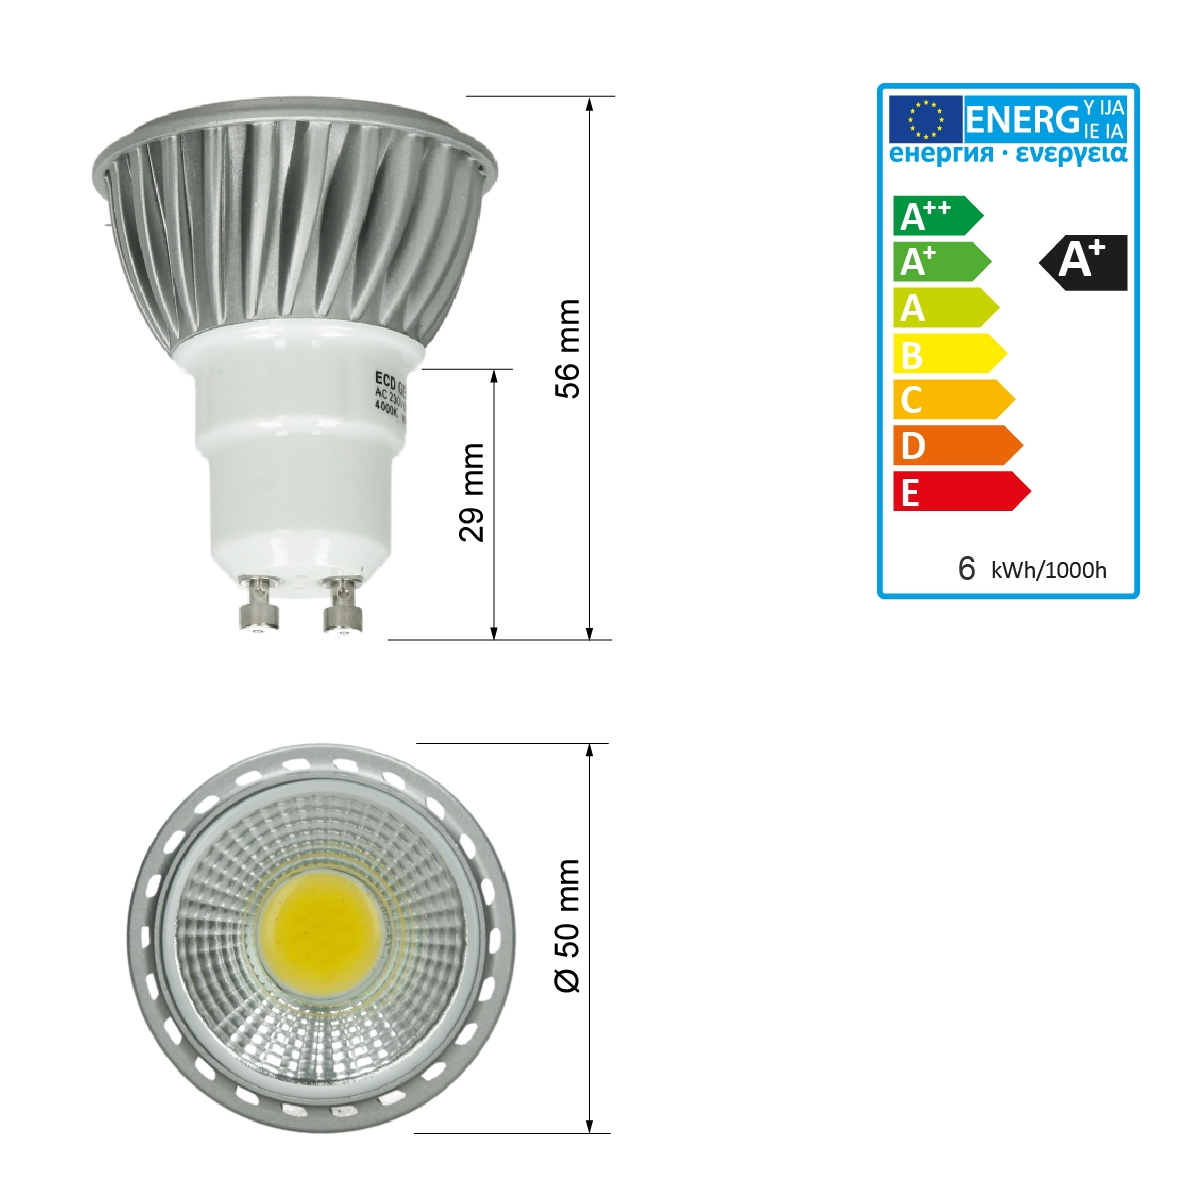 Led Gu10 10x Led Gu10 Mr16 Smd Recessed Ceiling Spotlights